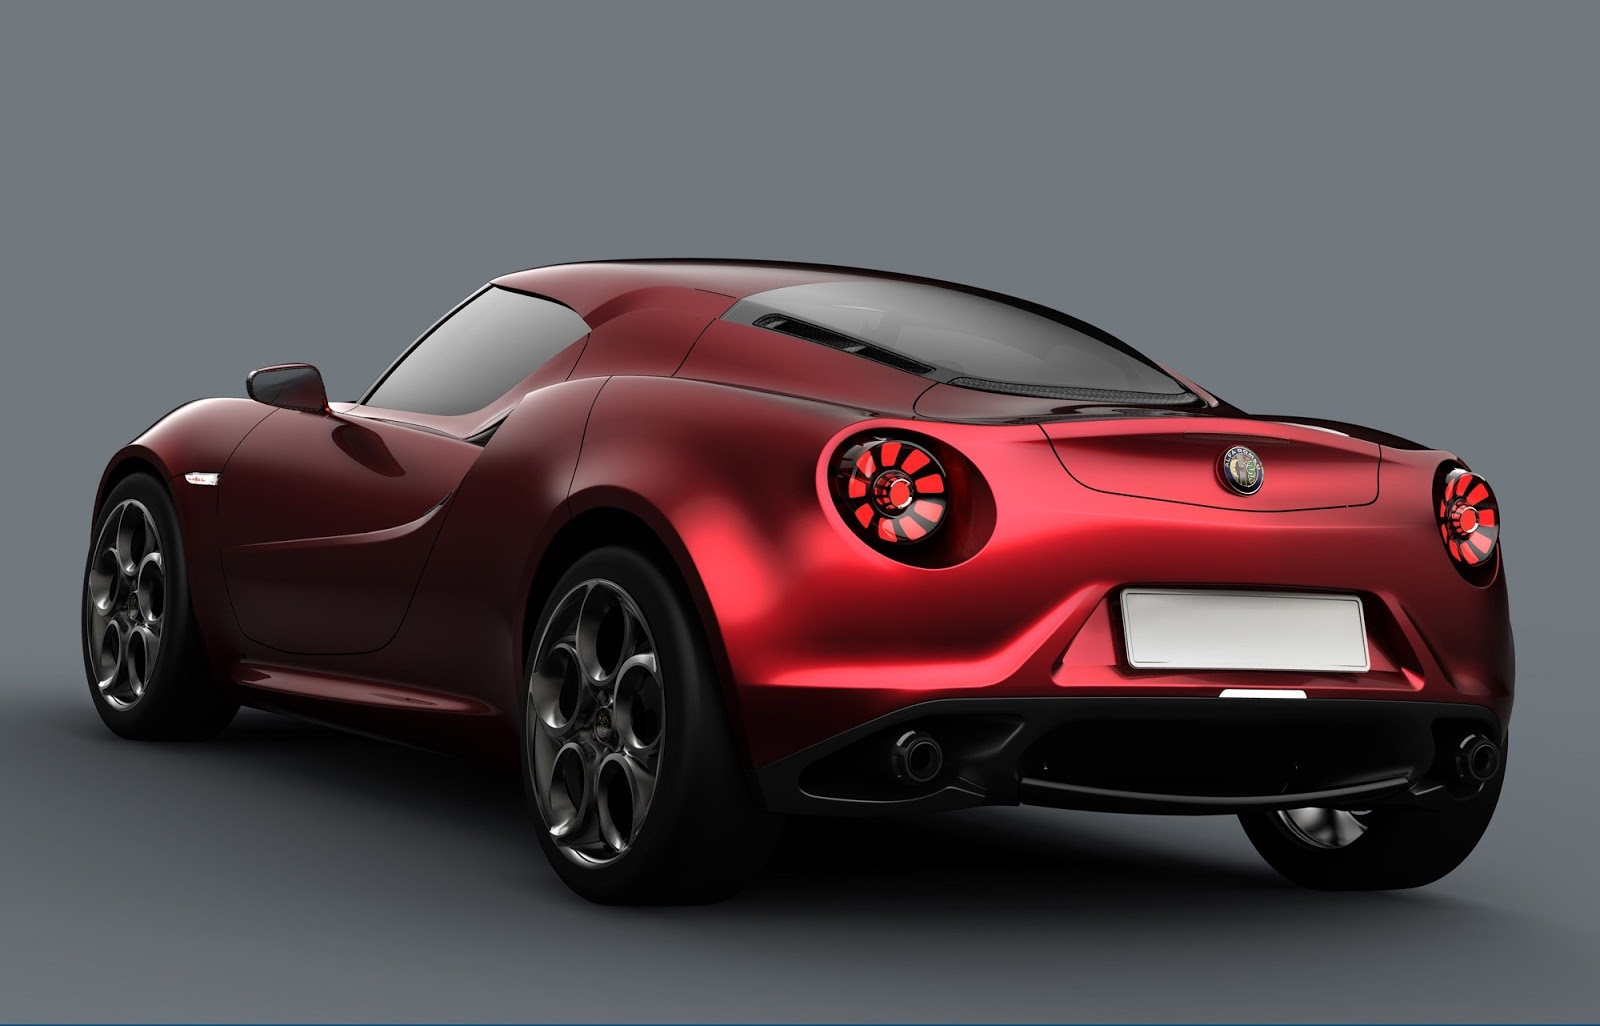 2014 Alfa Romeo 4C Car Prices | Search4Prices